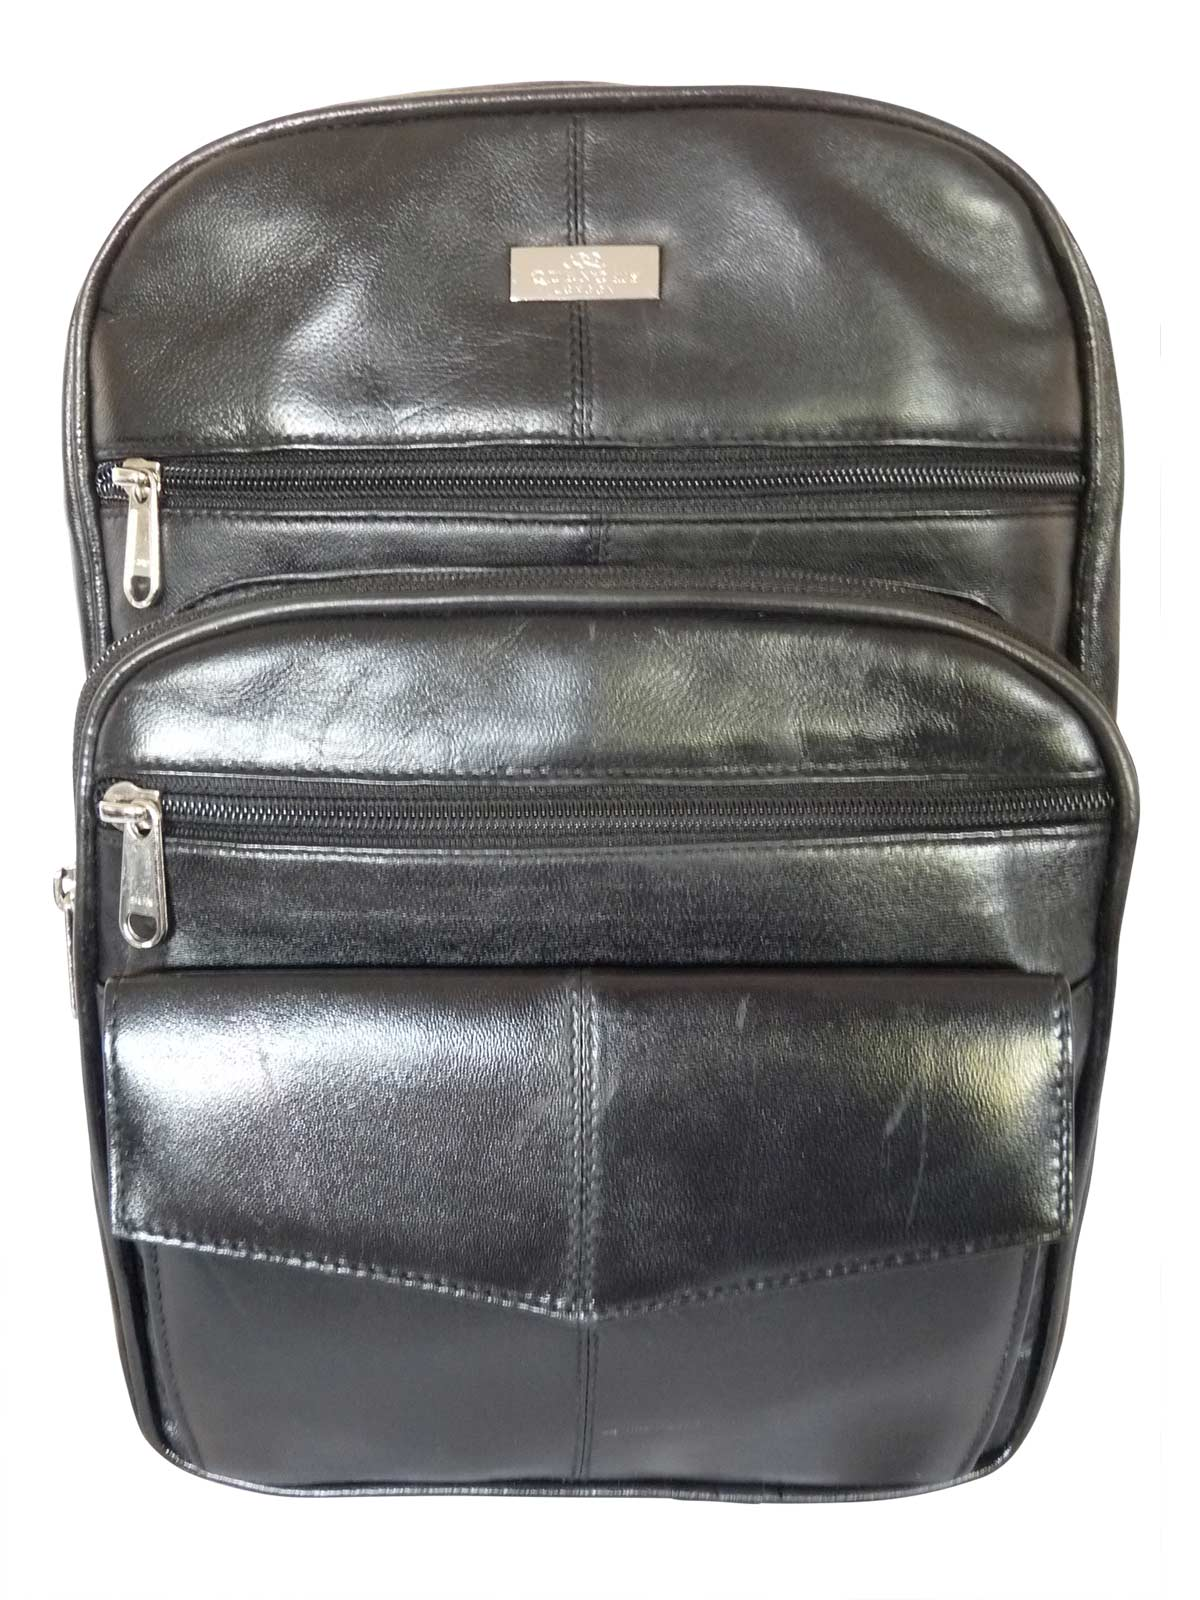 Womens Real leather backpack handbag QL192Kf